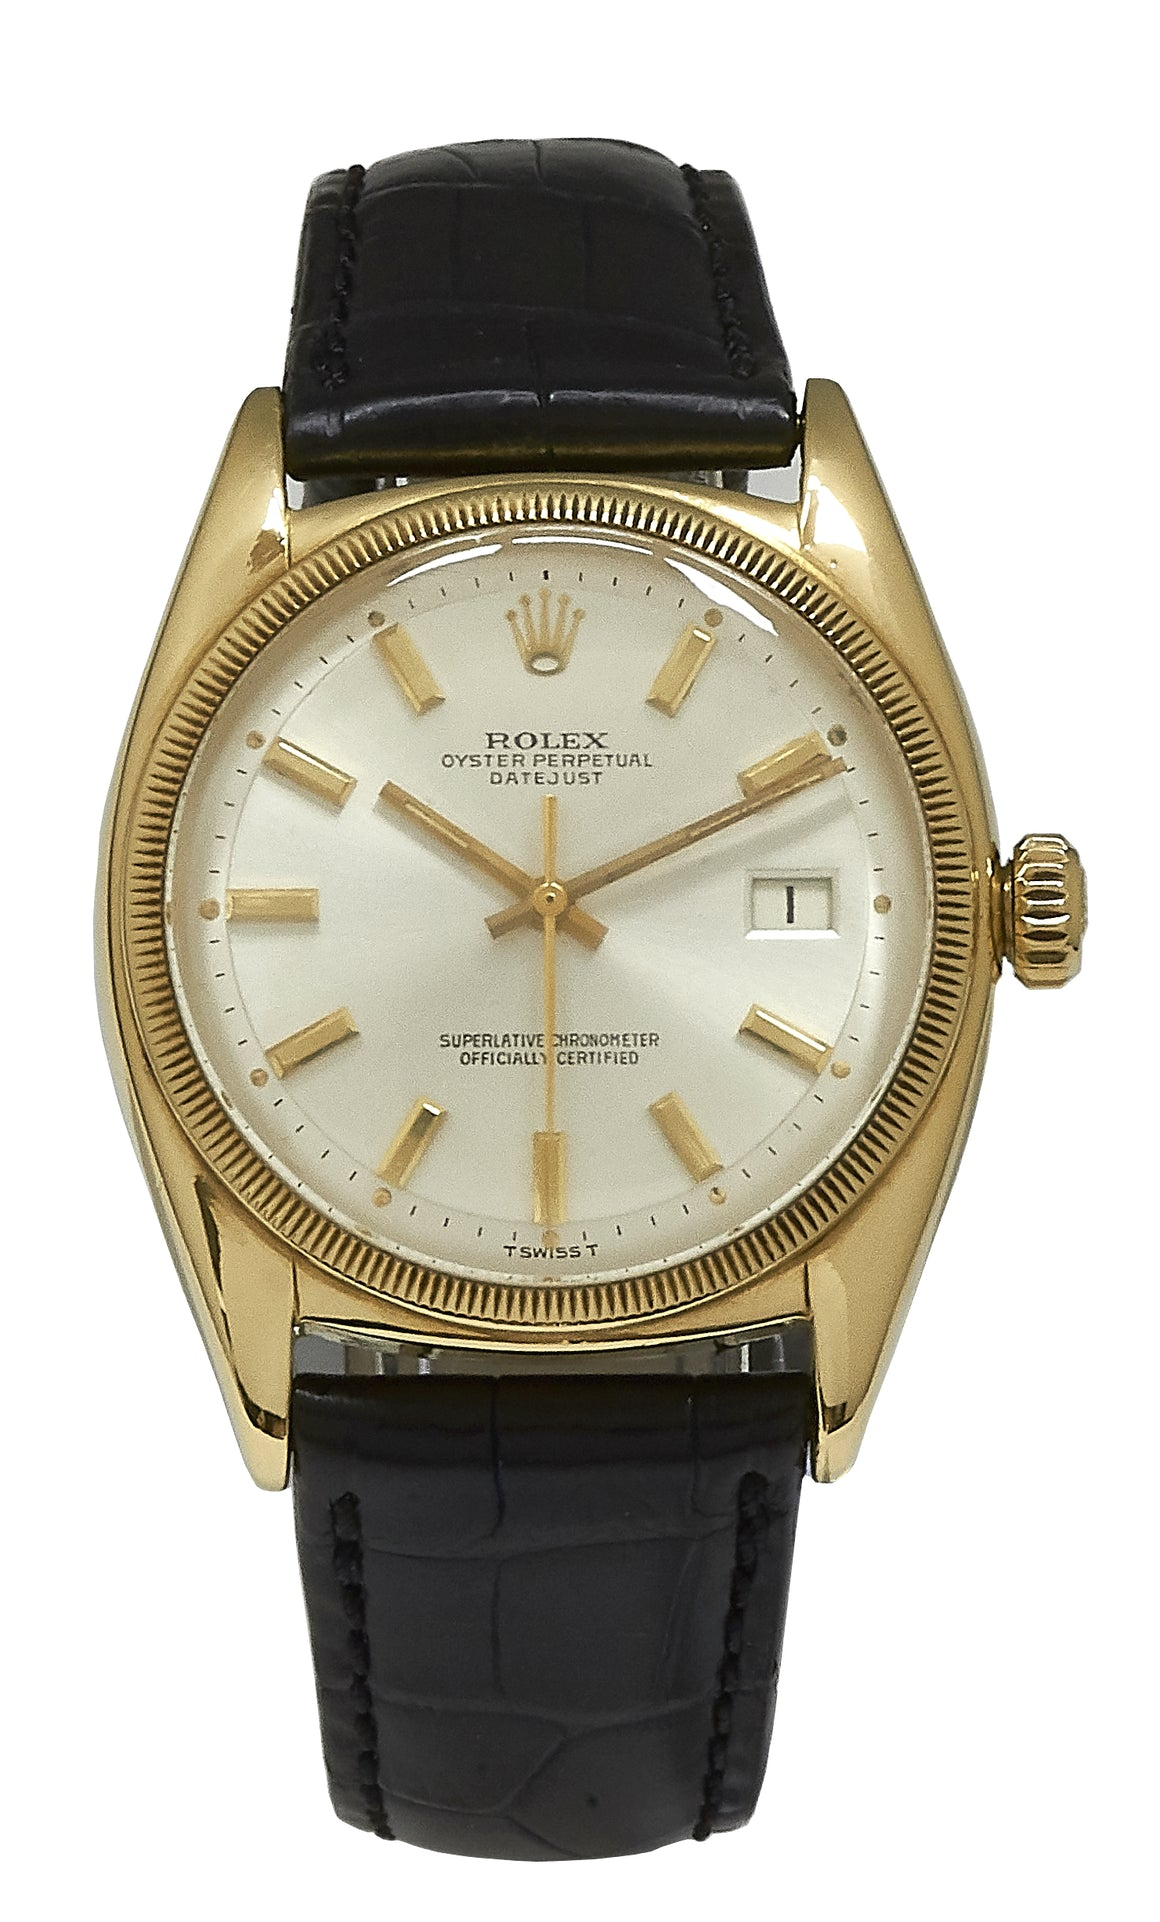 Rolex 18k Datejust Bubble Back, Silver Dial, Ref: 6105